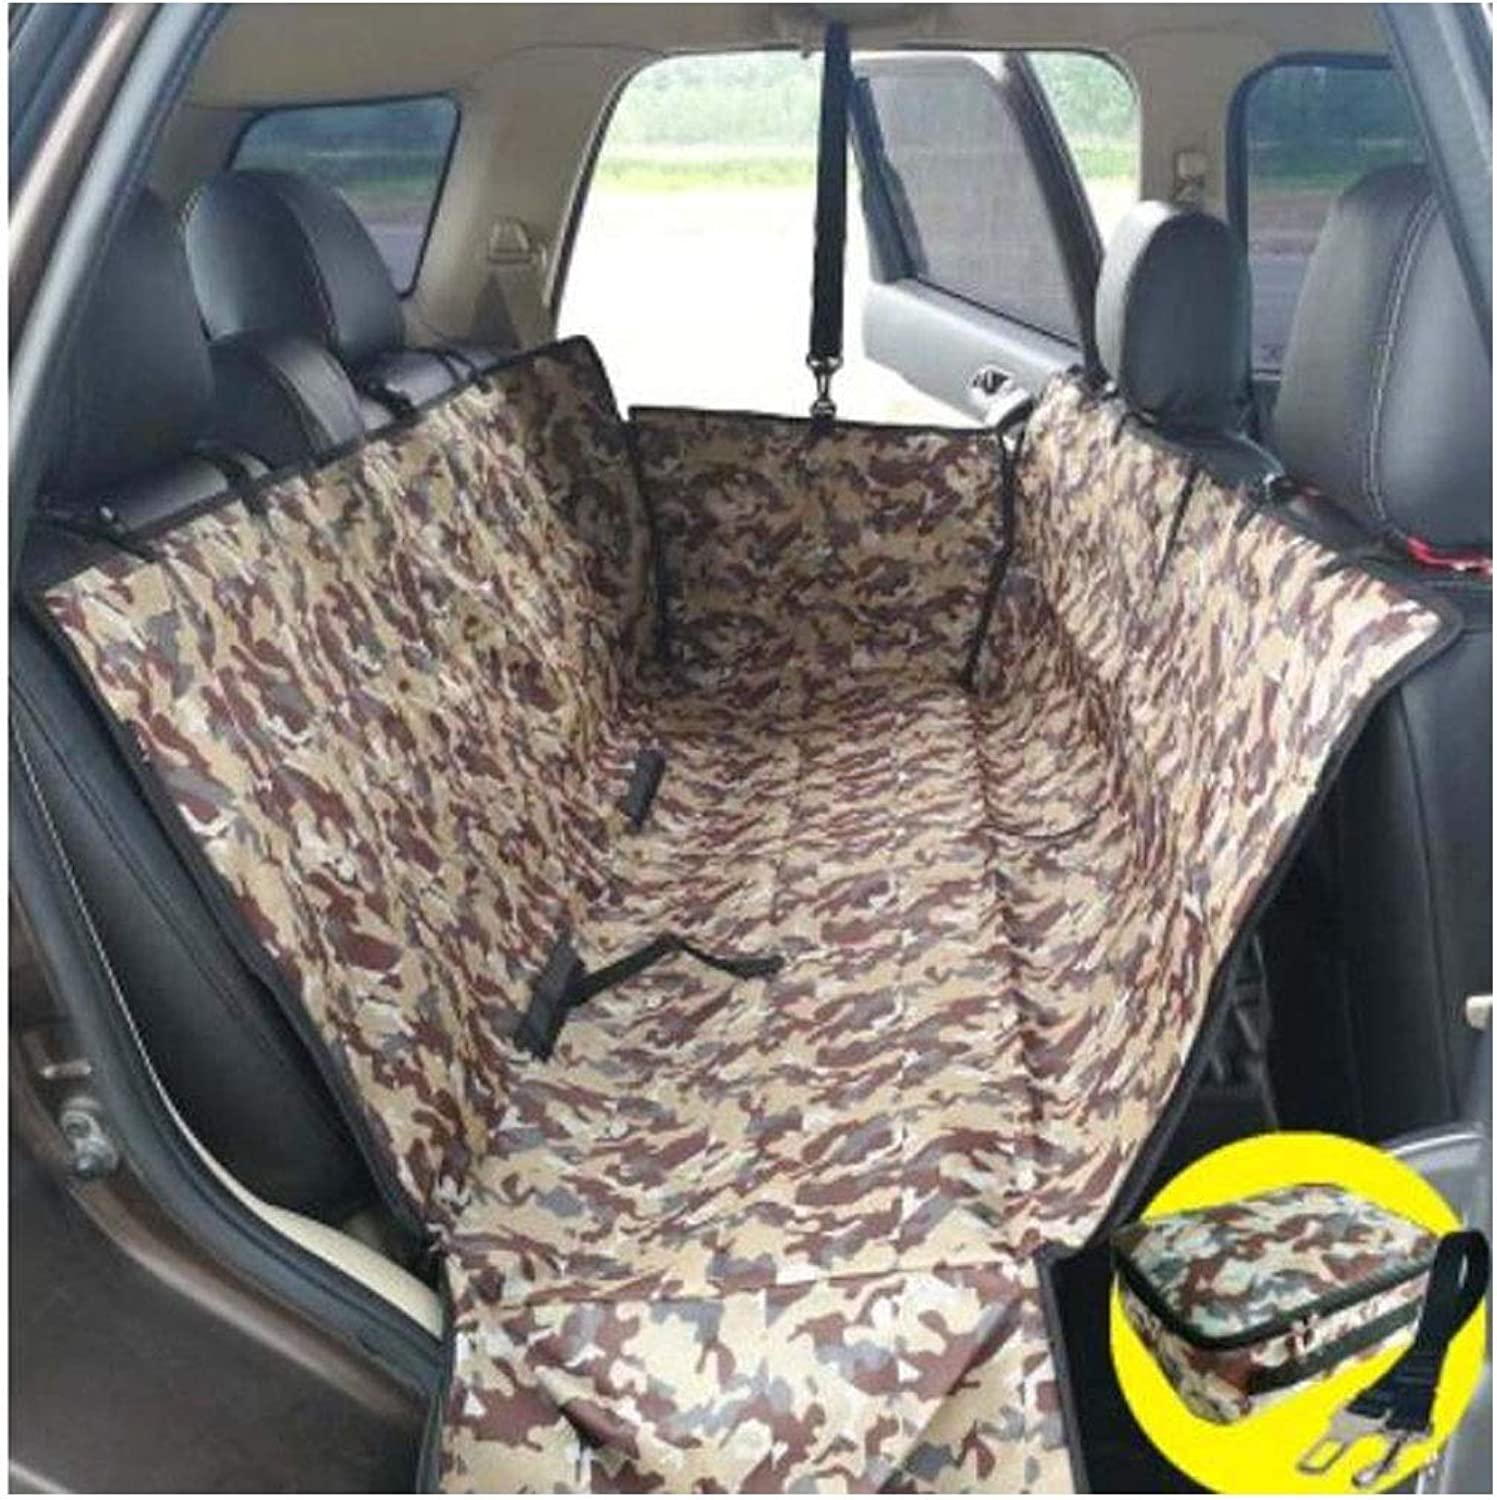 Dog Car Seat Cover, Dog Artifact Car Rear Seat Anti-Dirty Safety Seat Hammock Heavy Duty Non-Slip Waterproof and Durable, Distribution Storage Bag, Camouflage, Brown 130  50  45cm